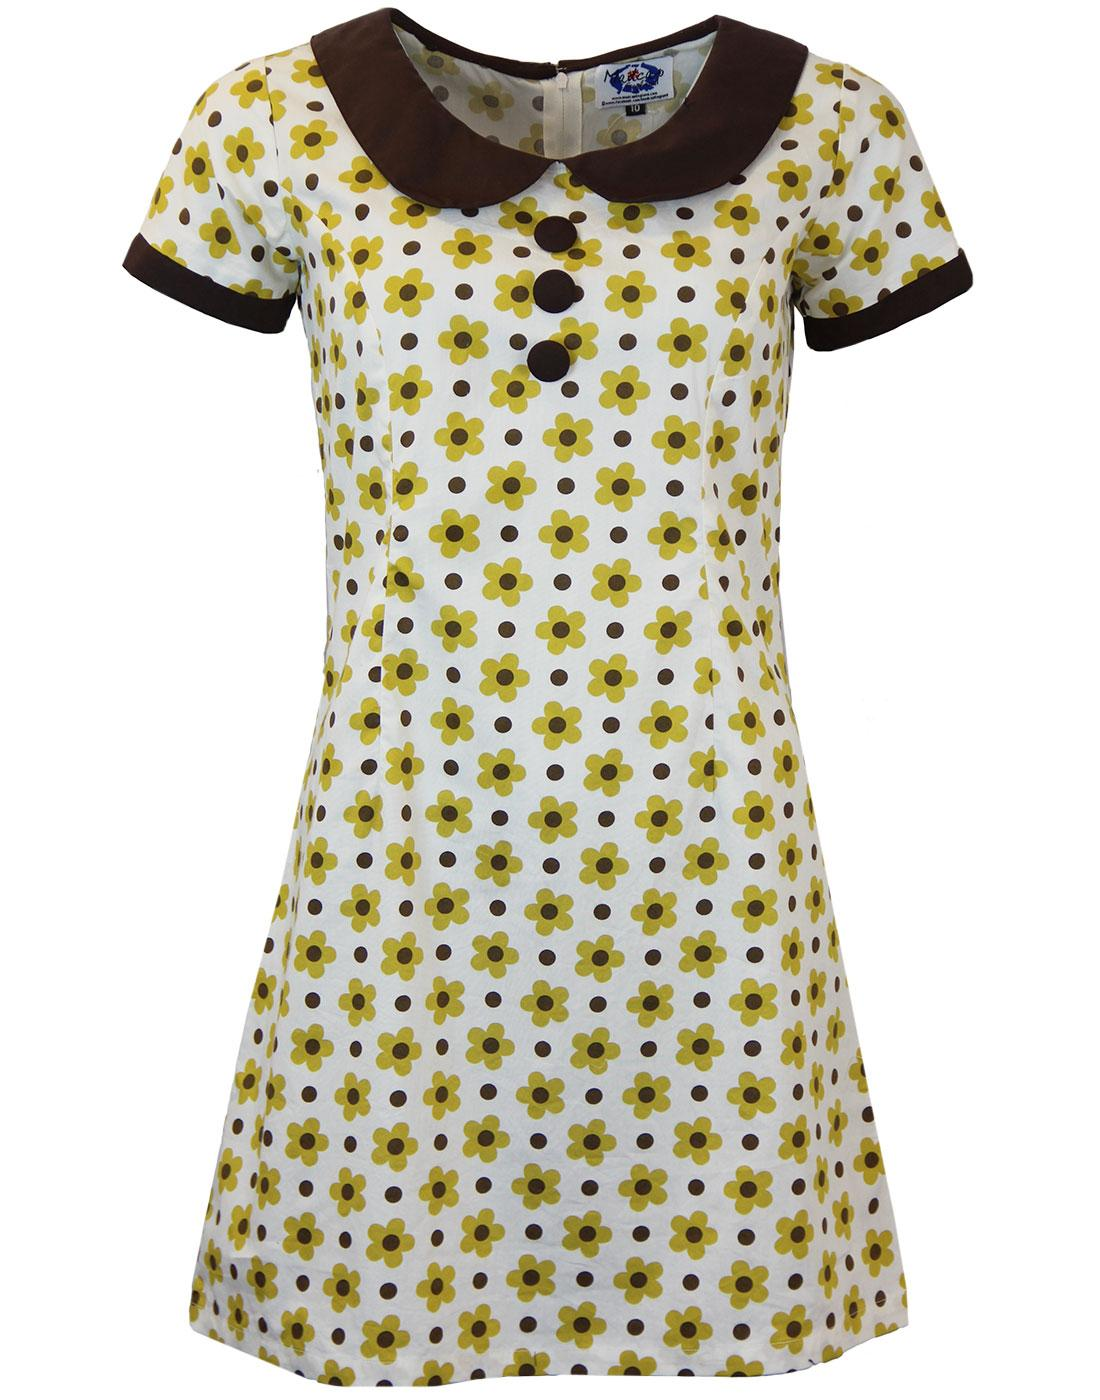 Dollierocker Floral MADCAP ENGLAND Polka Dot Dress